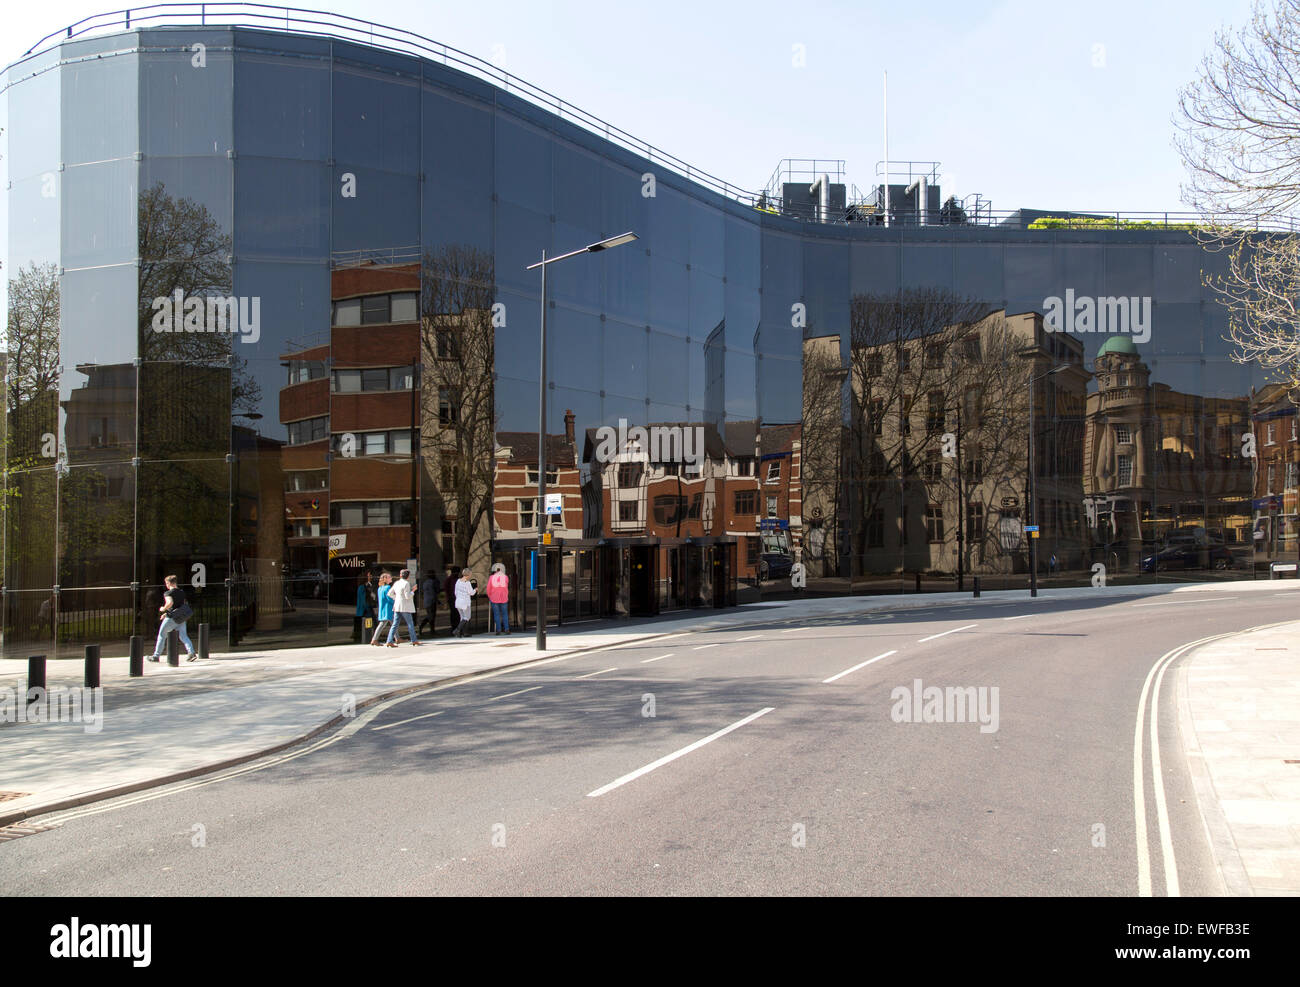 Reflective glass walls of Willis building, Ipswich, Suffolk, England, UK designed by Norman Foster 1970s - Stock Image